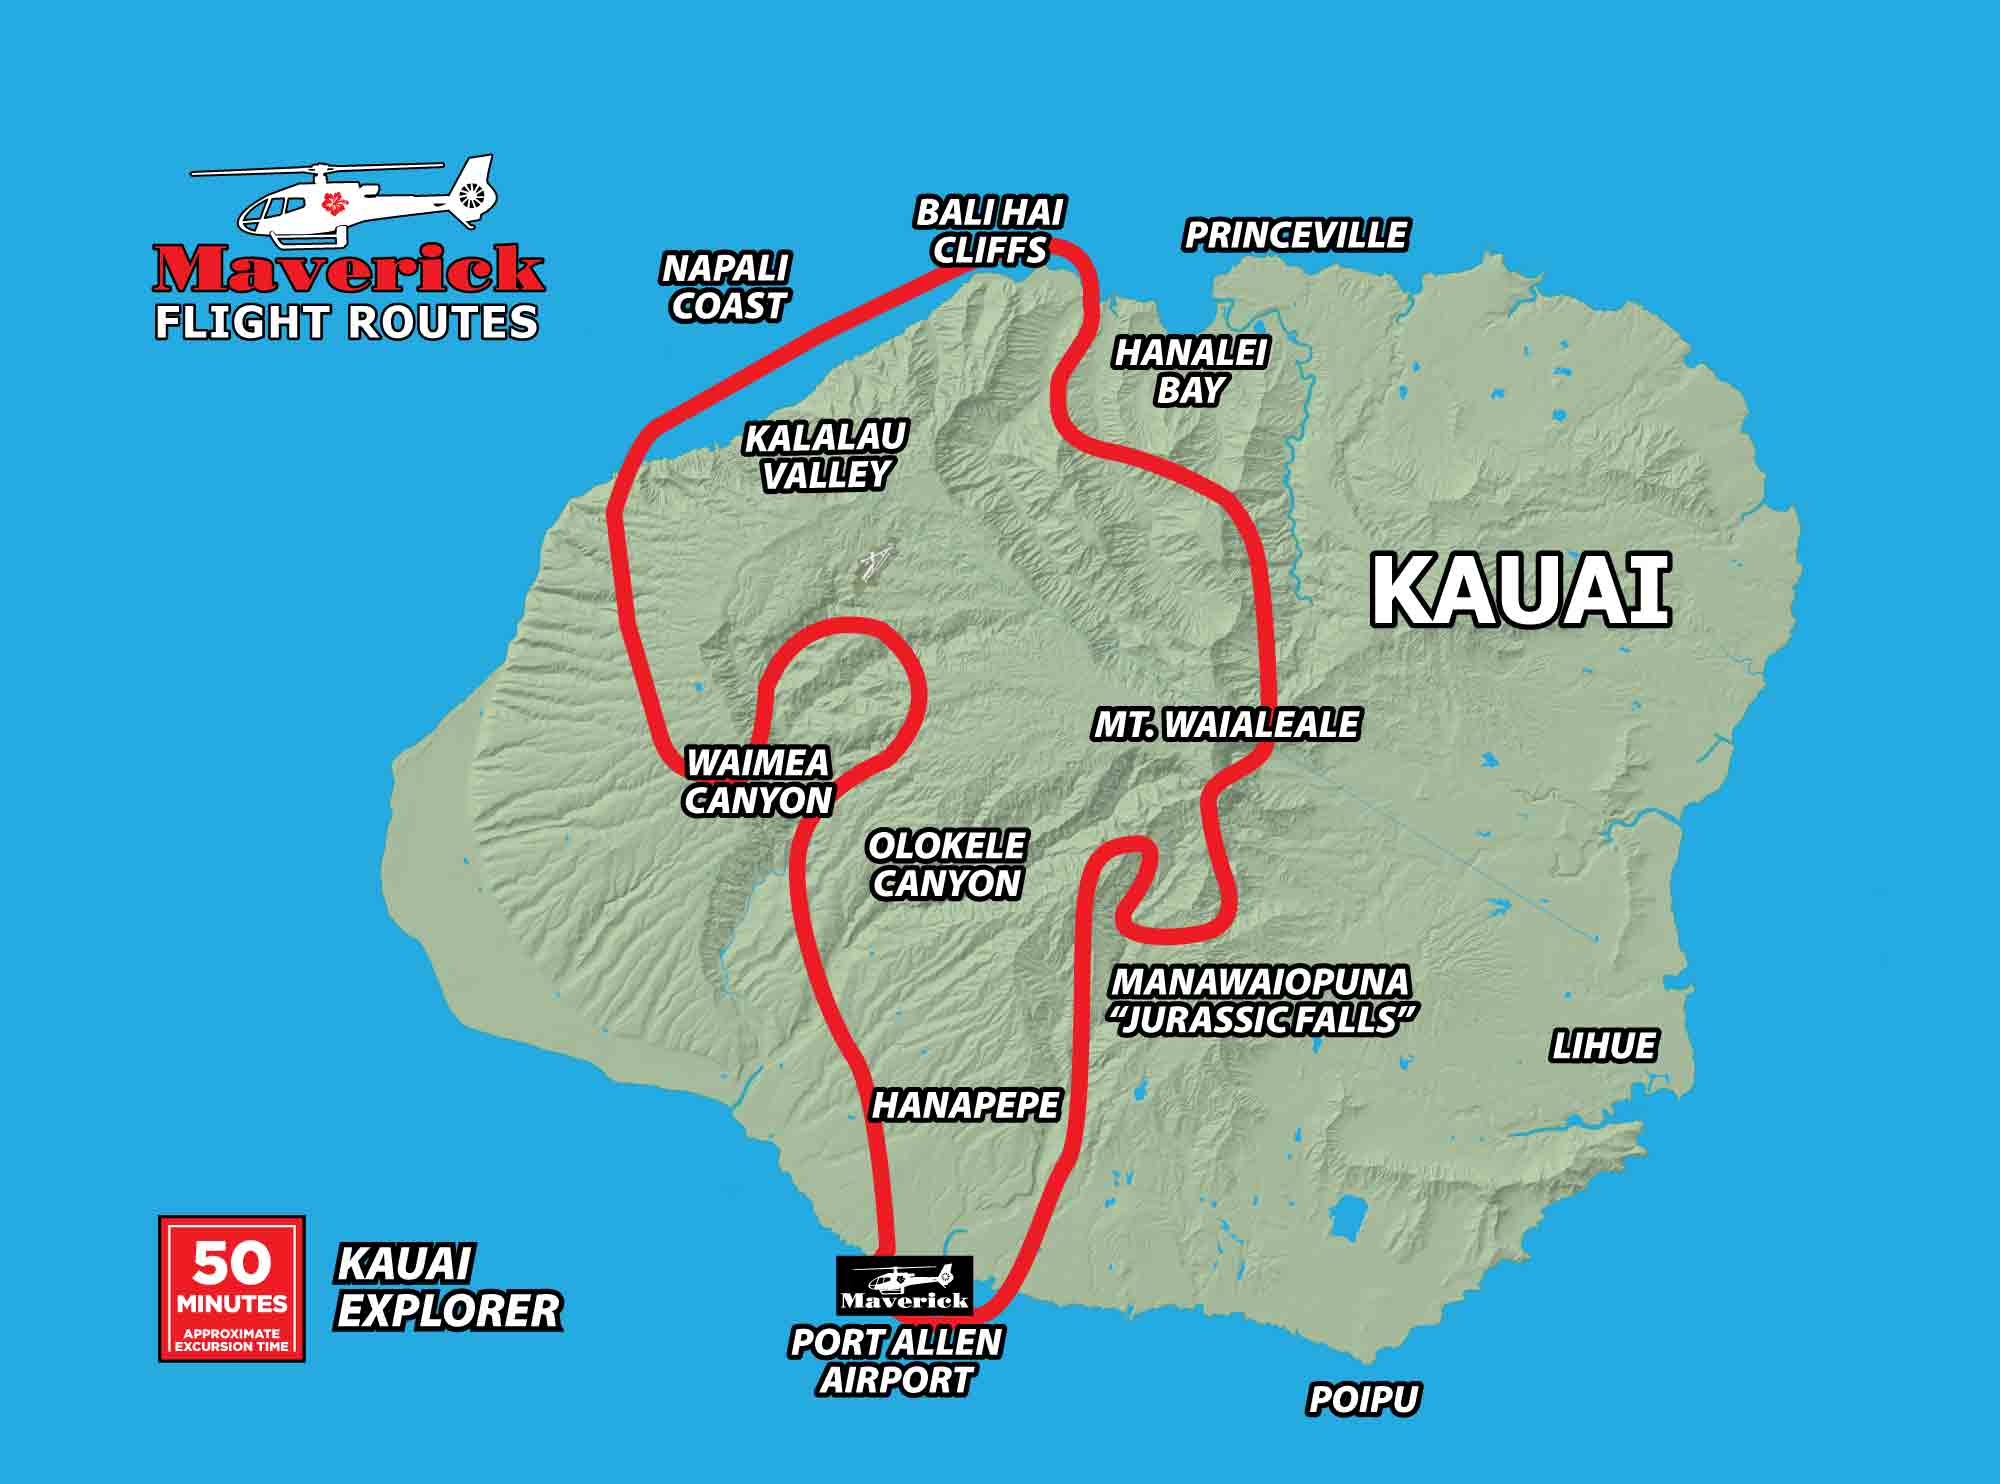 Kauai Explorer tour flight map